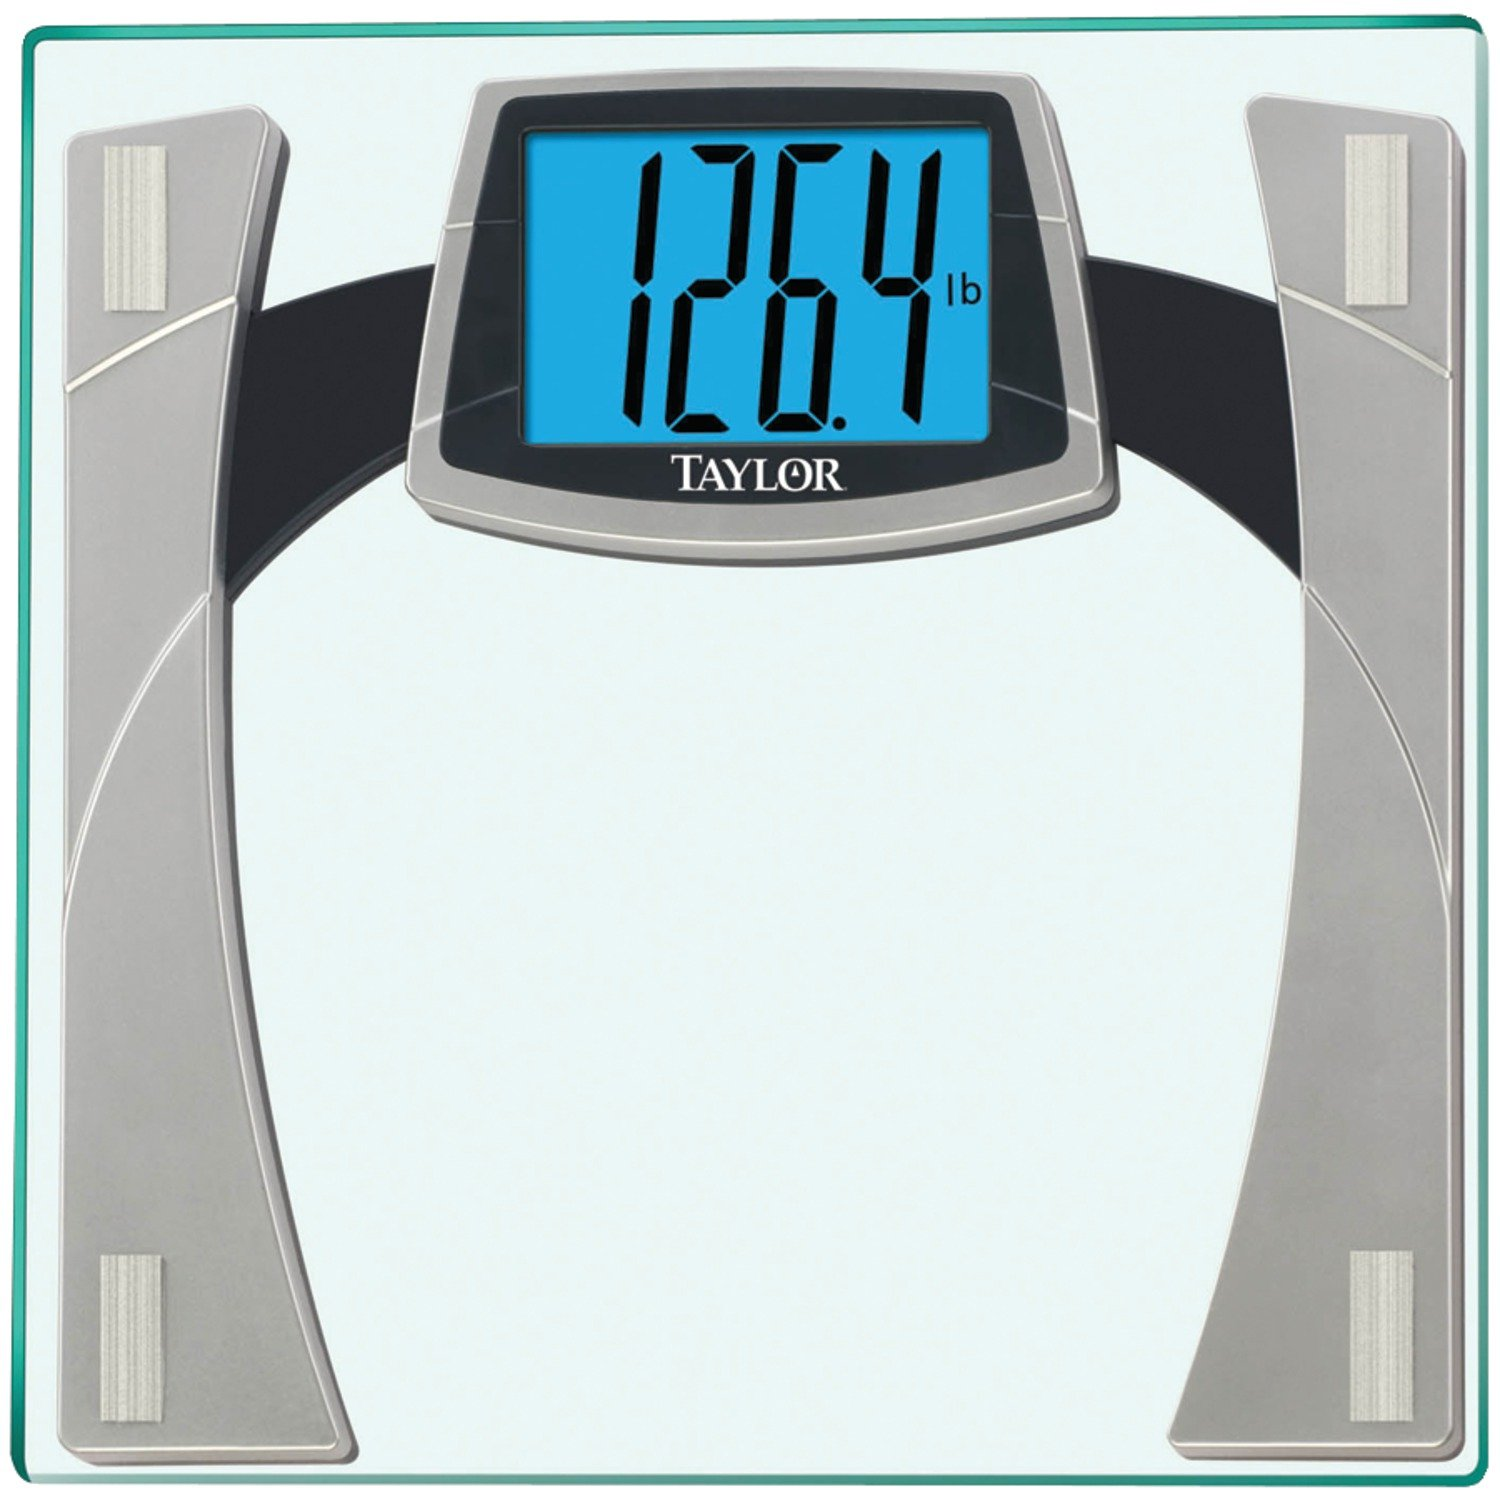 Batteries for bathroom scales - Amazon Com Taylor Tempered Glass Scale With Huge Lighted Readout Health Personal Care